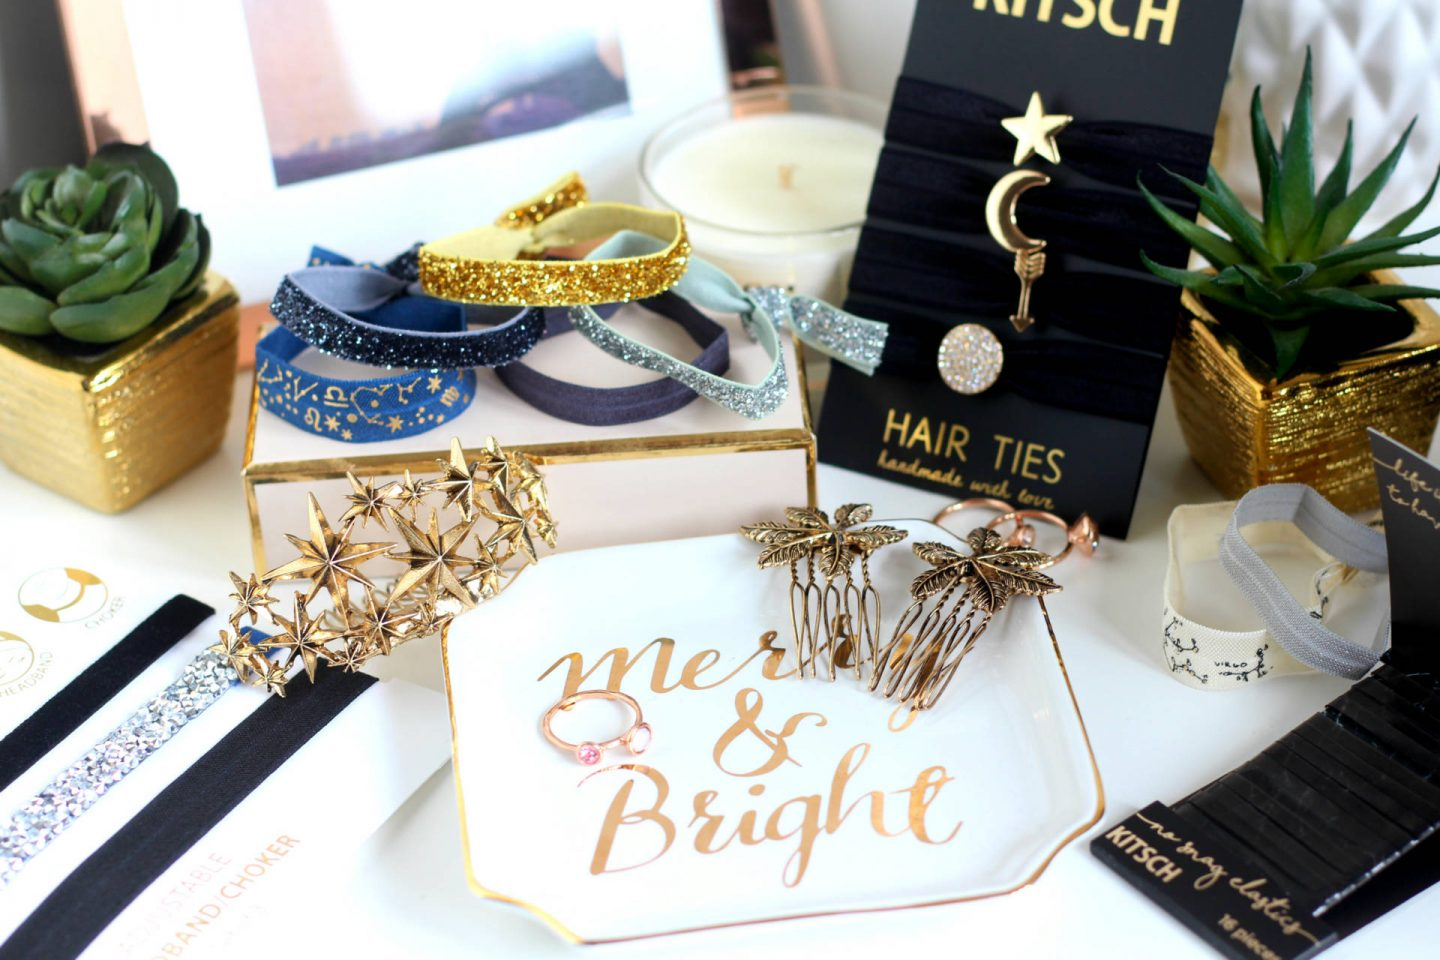 Upping the glam with Kitsch